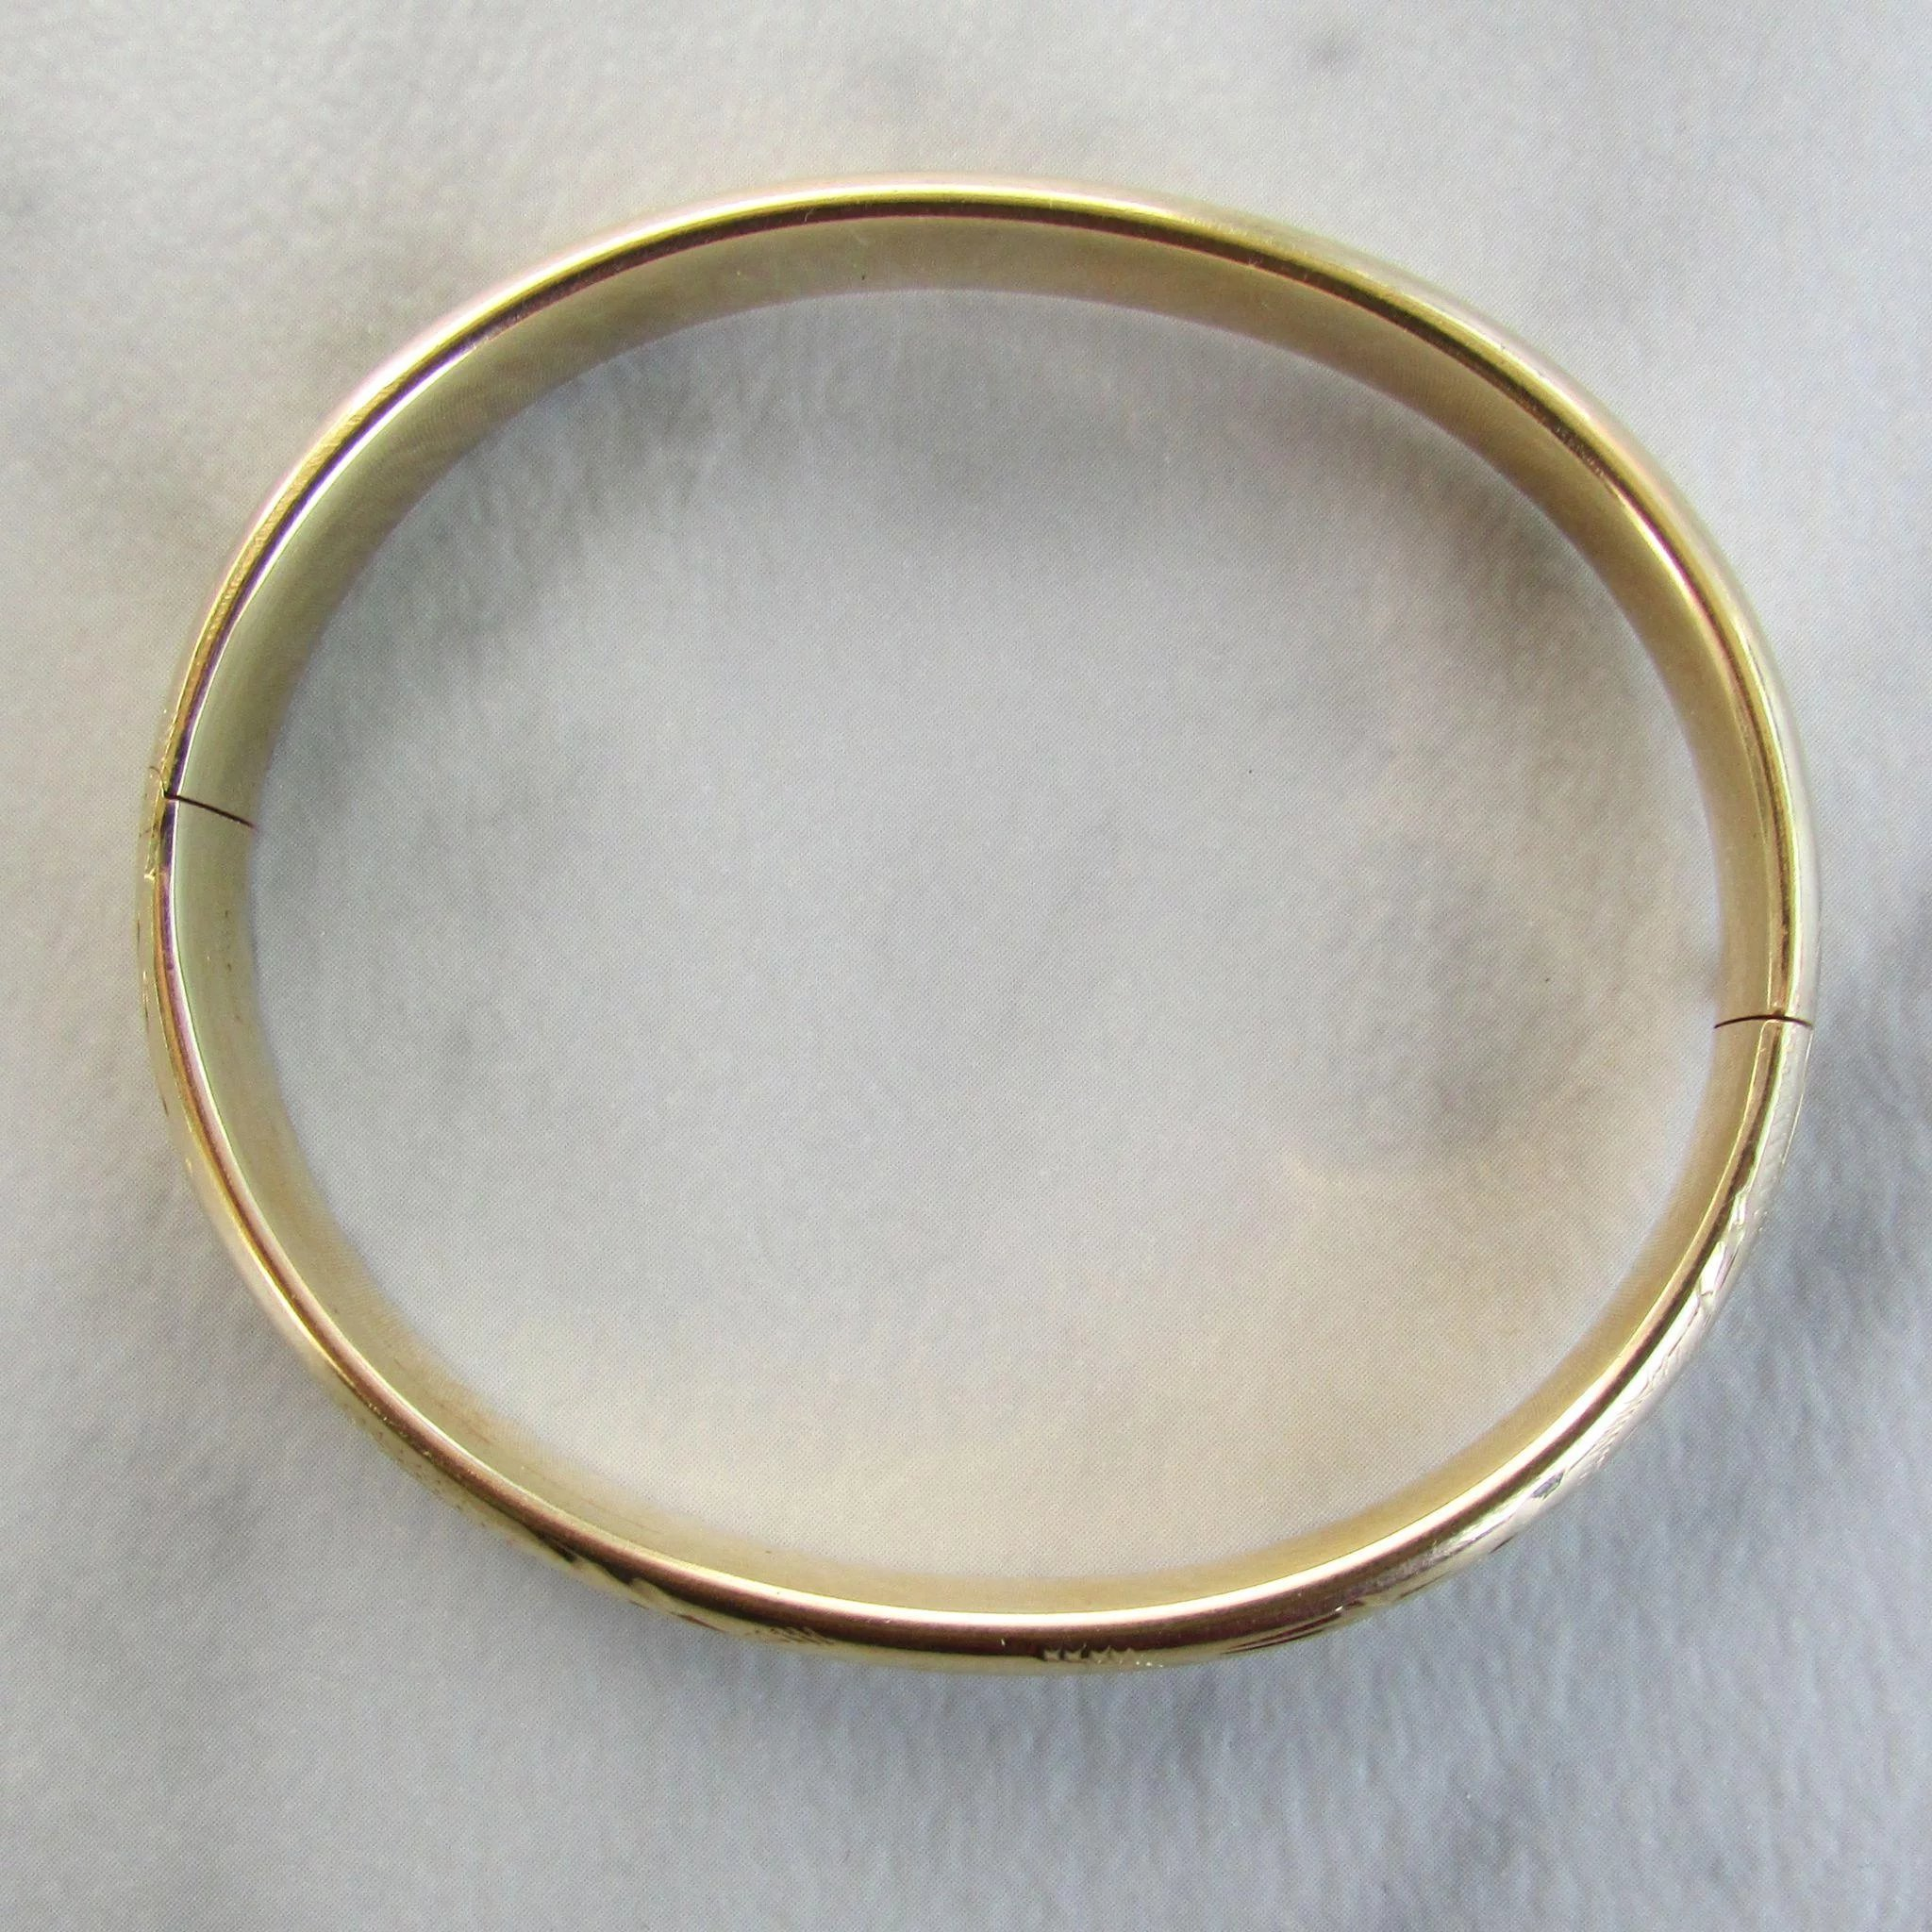 gold front search images diamond white bangles society bangle dehago bright view and bracelet